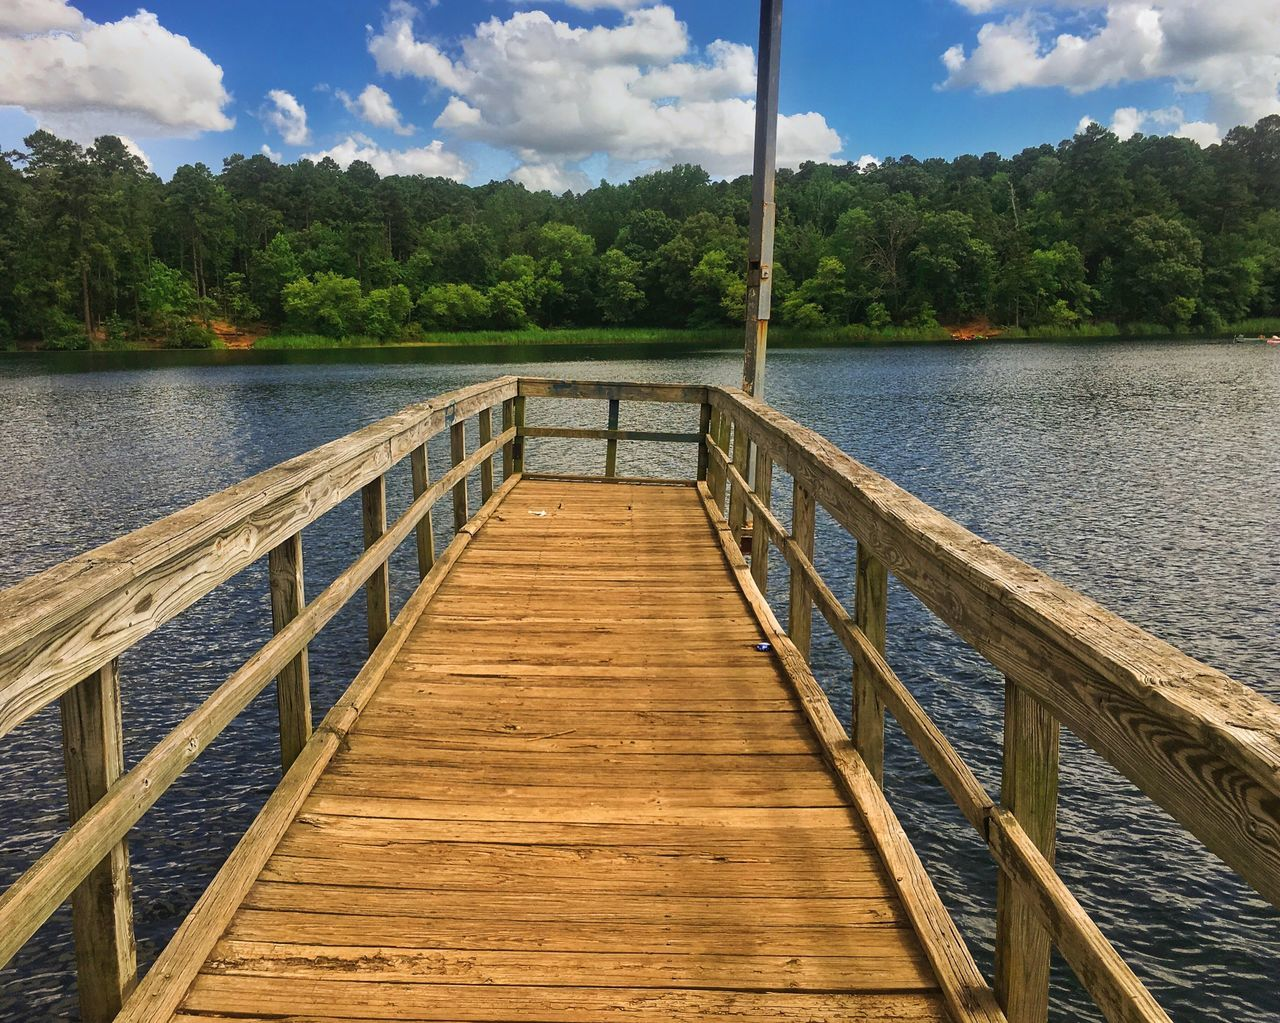 water, sky, tree, lake, cloud - sky, nature, tranquility, tranquil scene, outdoors, pier, beauty in nature, day, scenics, no people, jetty, mountain